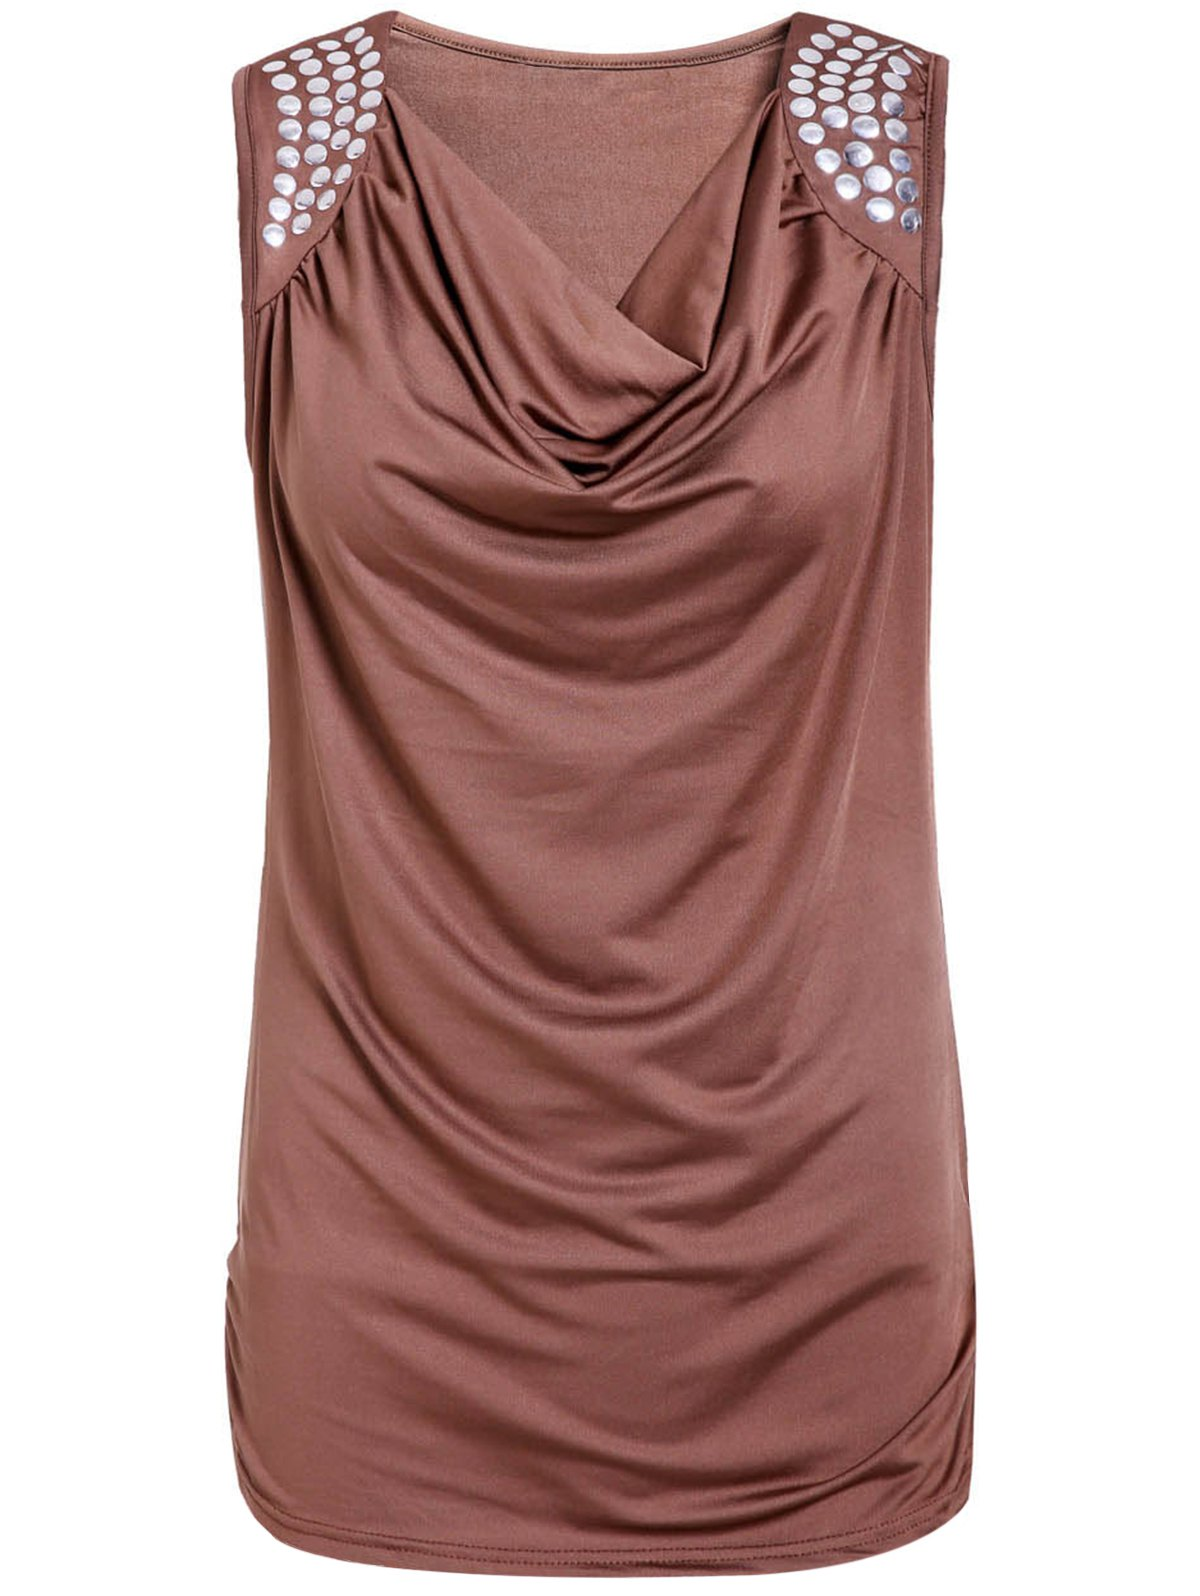 Fancy Stylish Draped Collar Studded Solid Color Top For Women